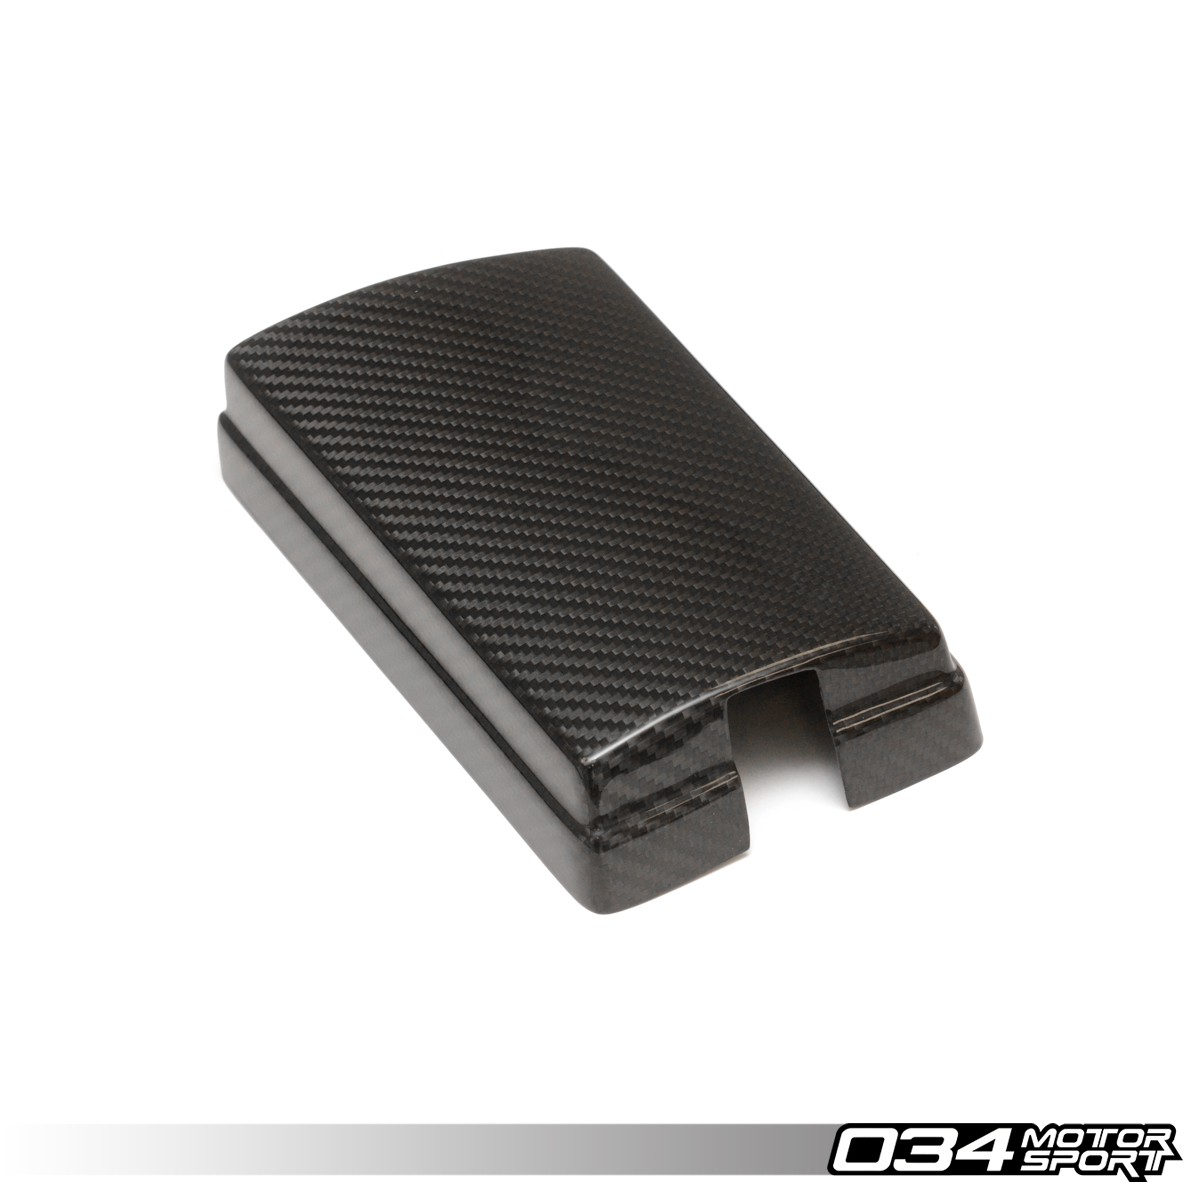 034motorsport carbon fiber fuse box cover audi 8v a3 s3 volkswagen mkvii golf r gti mqb 034 1zz 0002 1 carbon fiber fuse box cover, mkvii volkswagen gti & golf r, 8v fuse box cover at bayanpartner.co